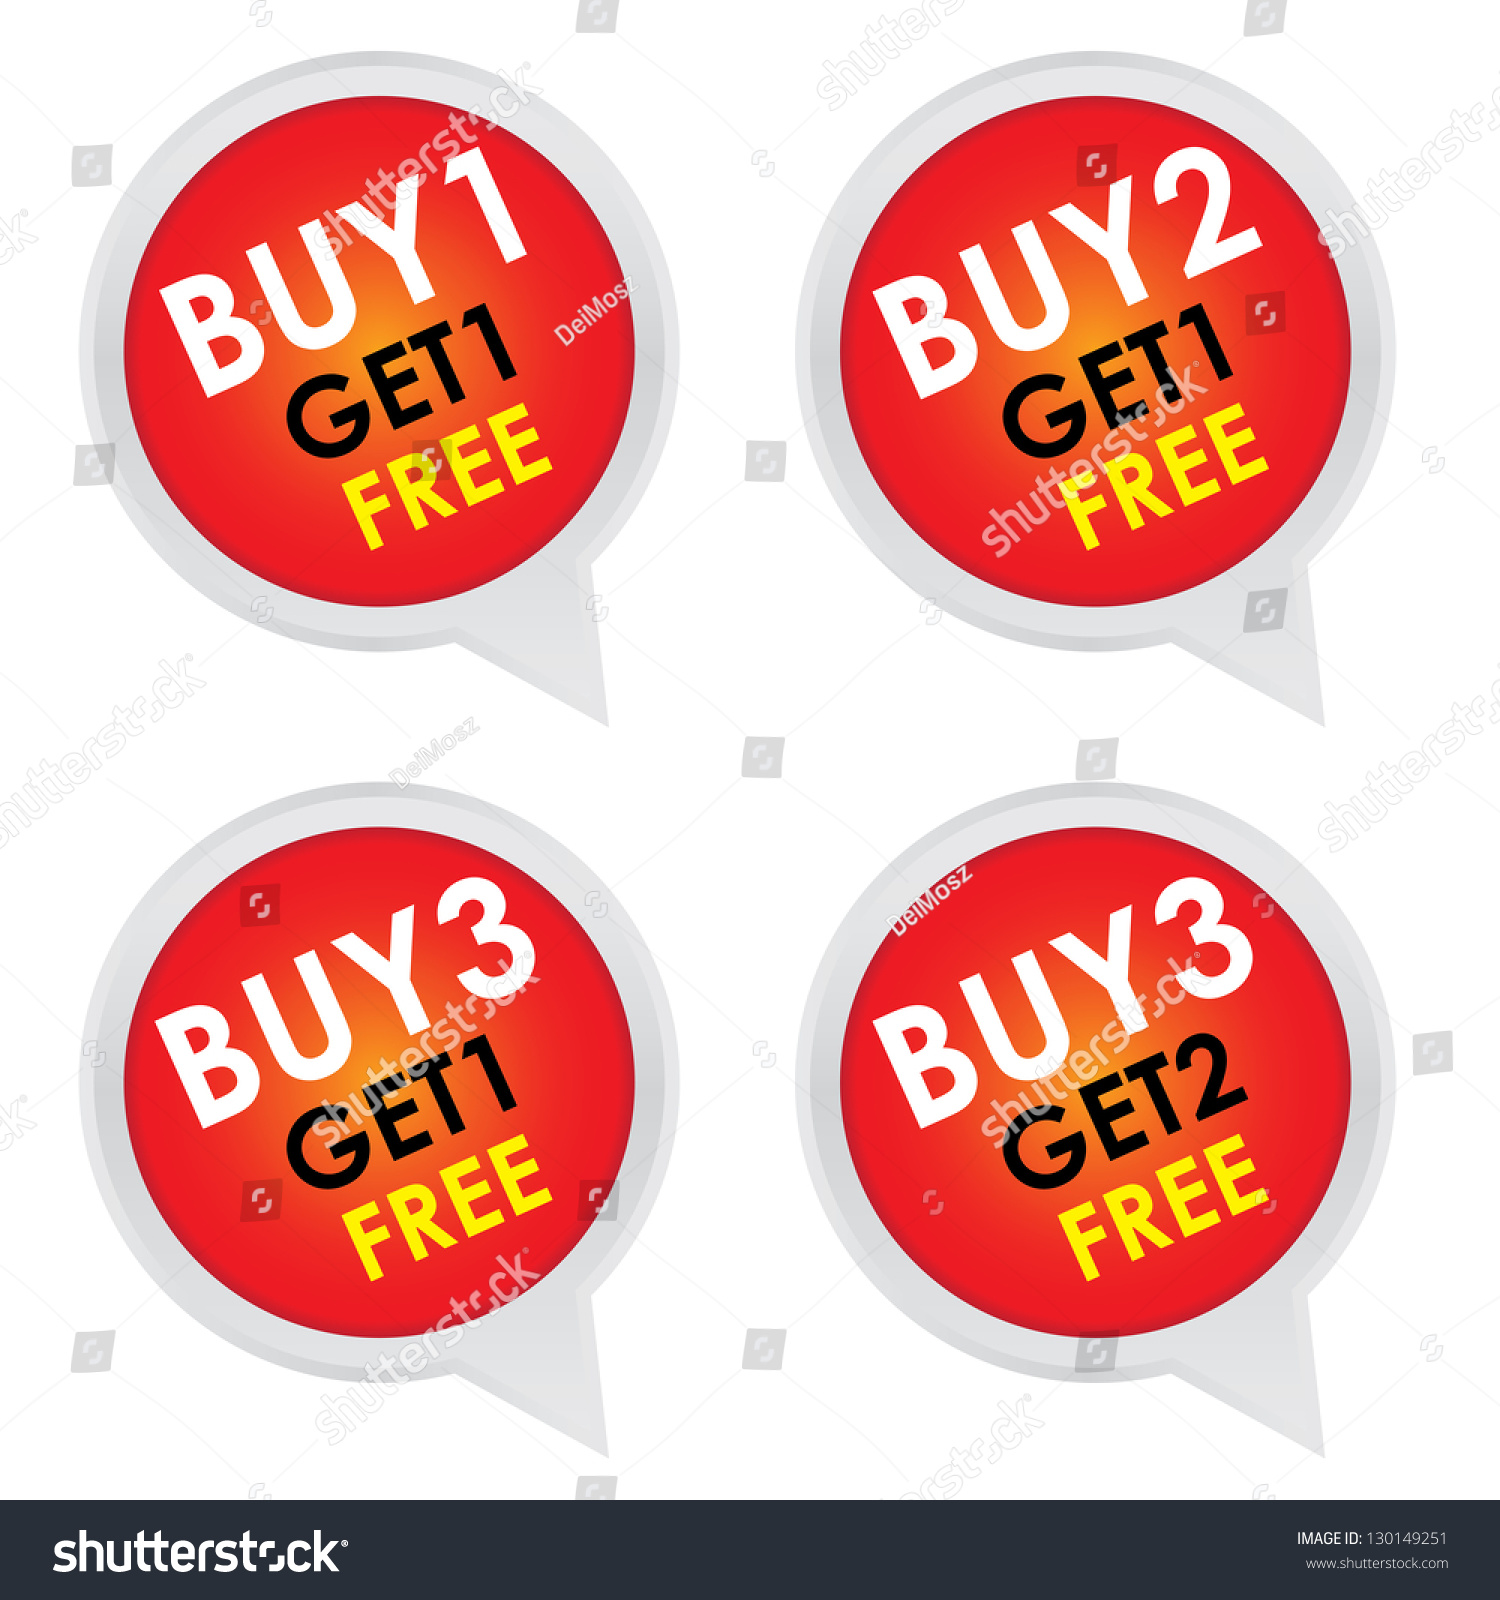 How To Buy Stocks For Free Sticker Or Label For Marketing Campaign Buy 1 Get